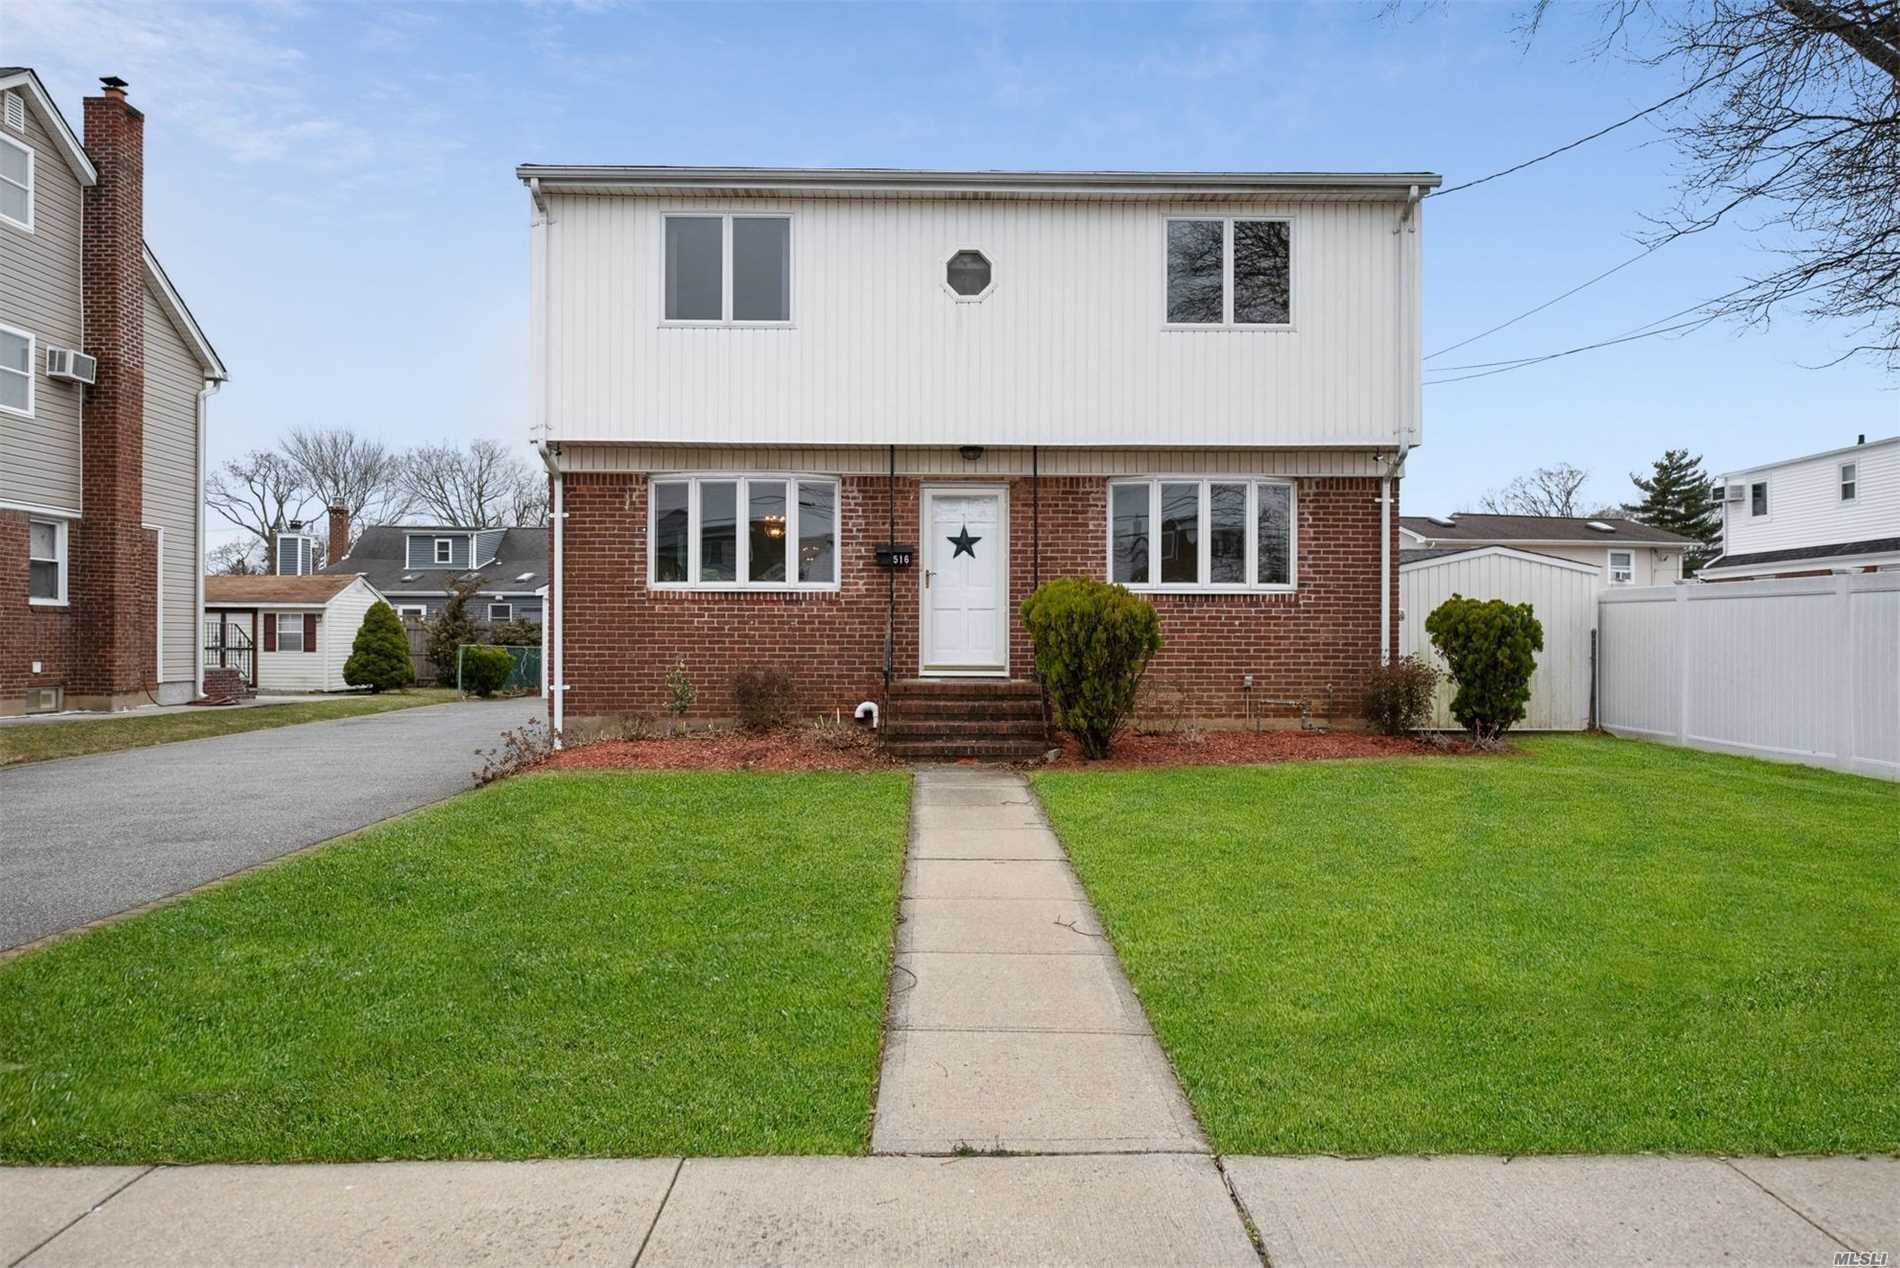 516 Hull St - East Meadow, New York